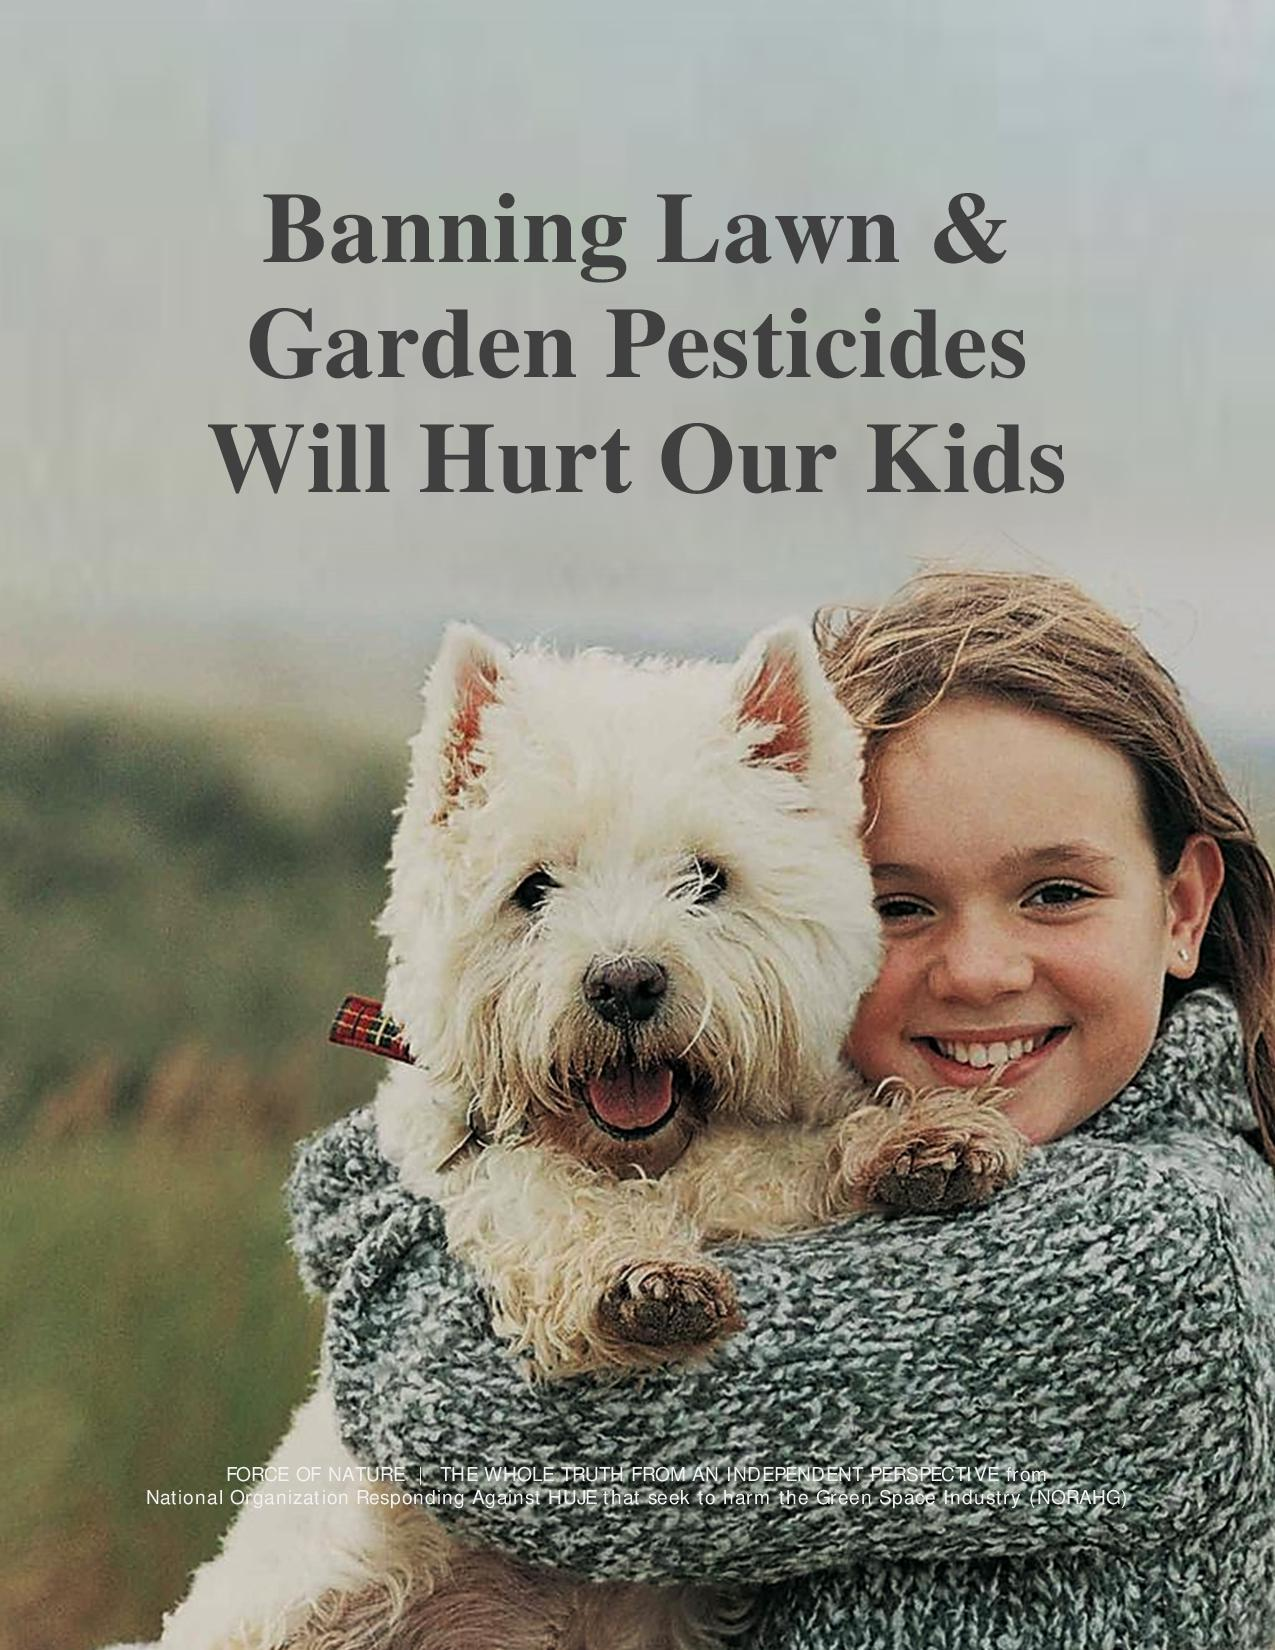 Children & Pesticide Bans (3)